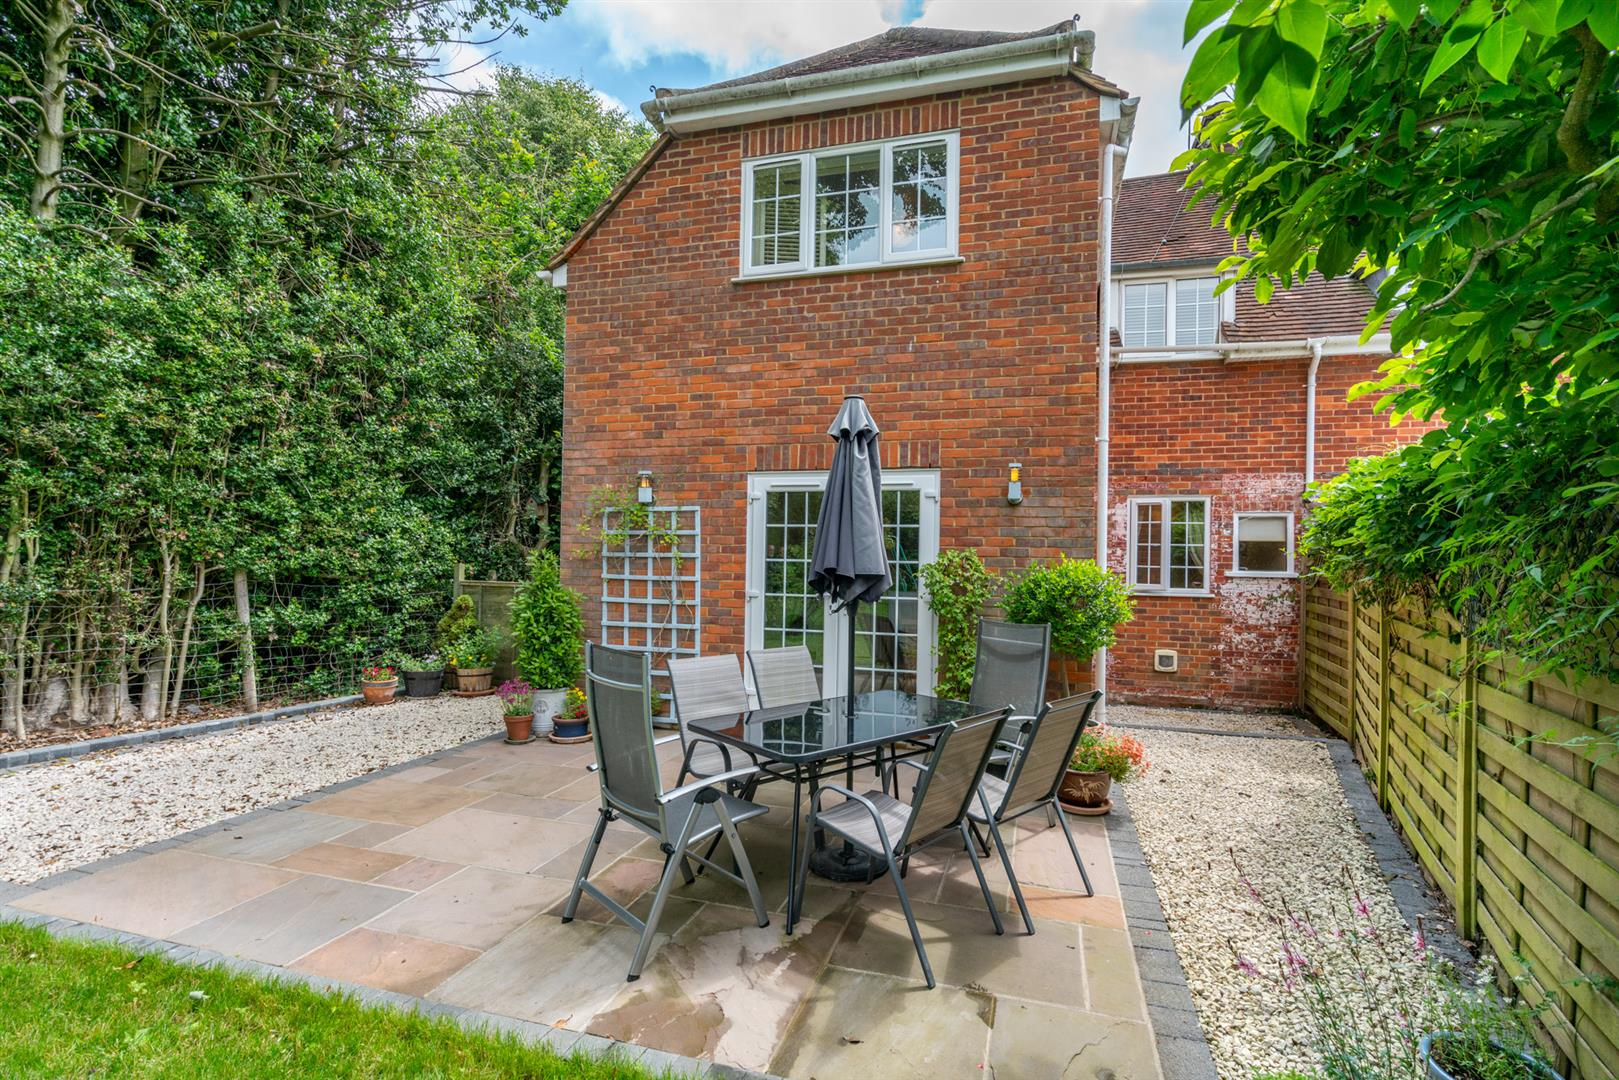 14-Chesham-Road-1421 - patio chair looking back at